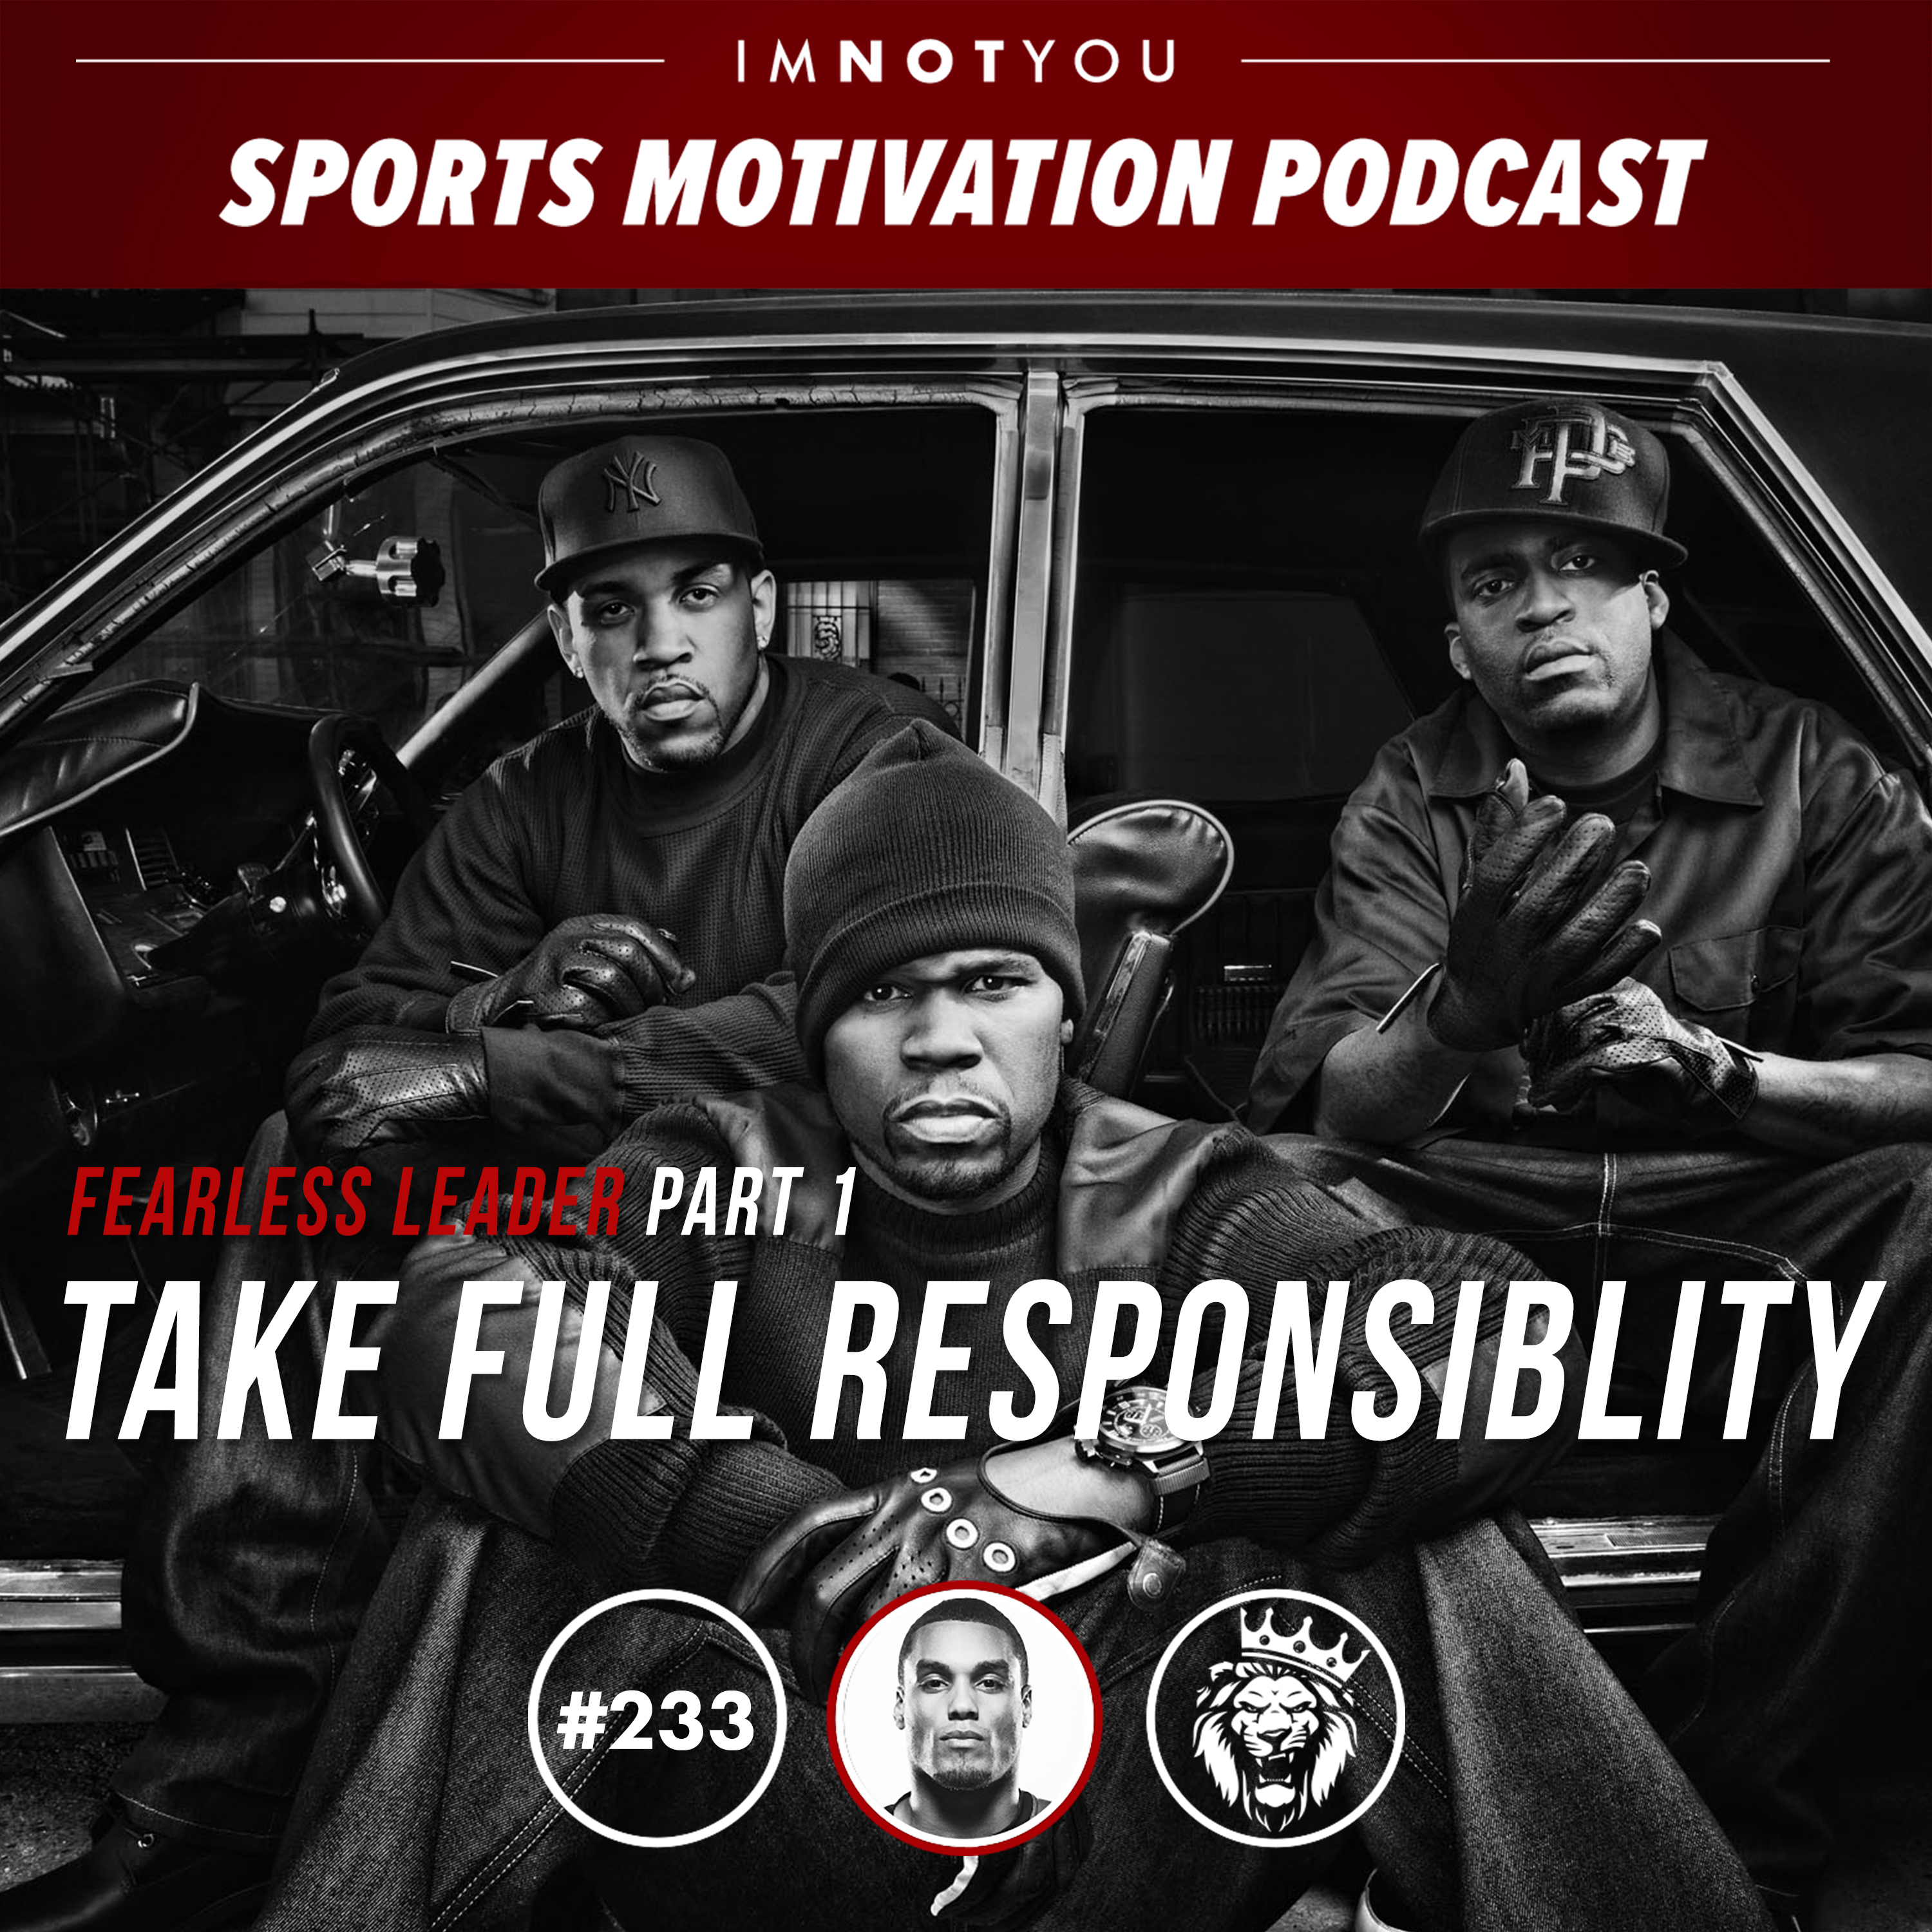 233: Fearless Leader Part 1: Take Full Responsibility